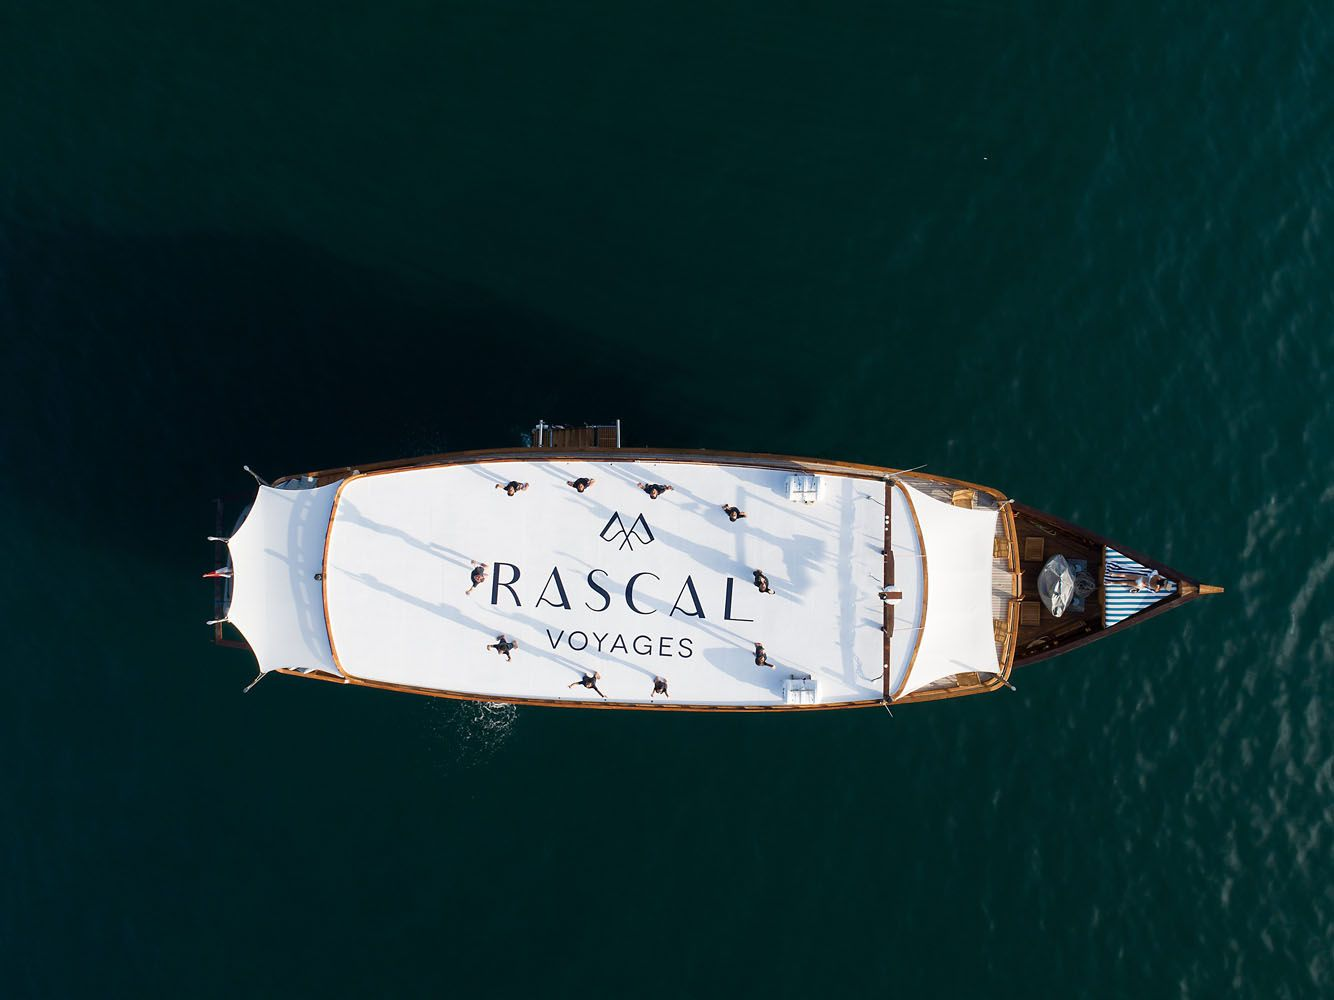 Get To Know The Rascal, A Private Yacht For Off-The-Grid Adventures